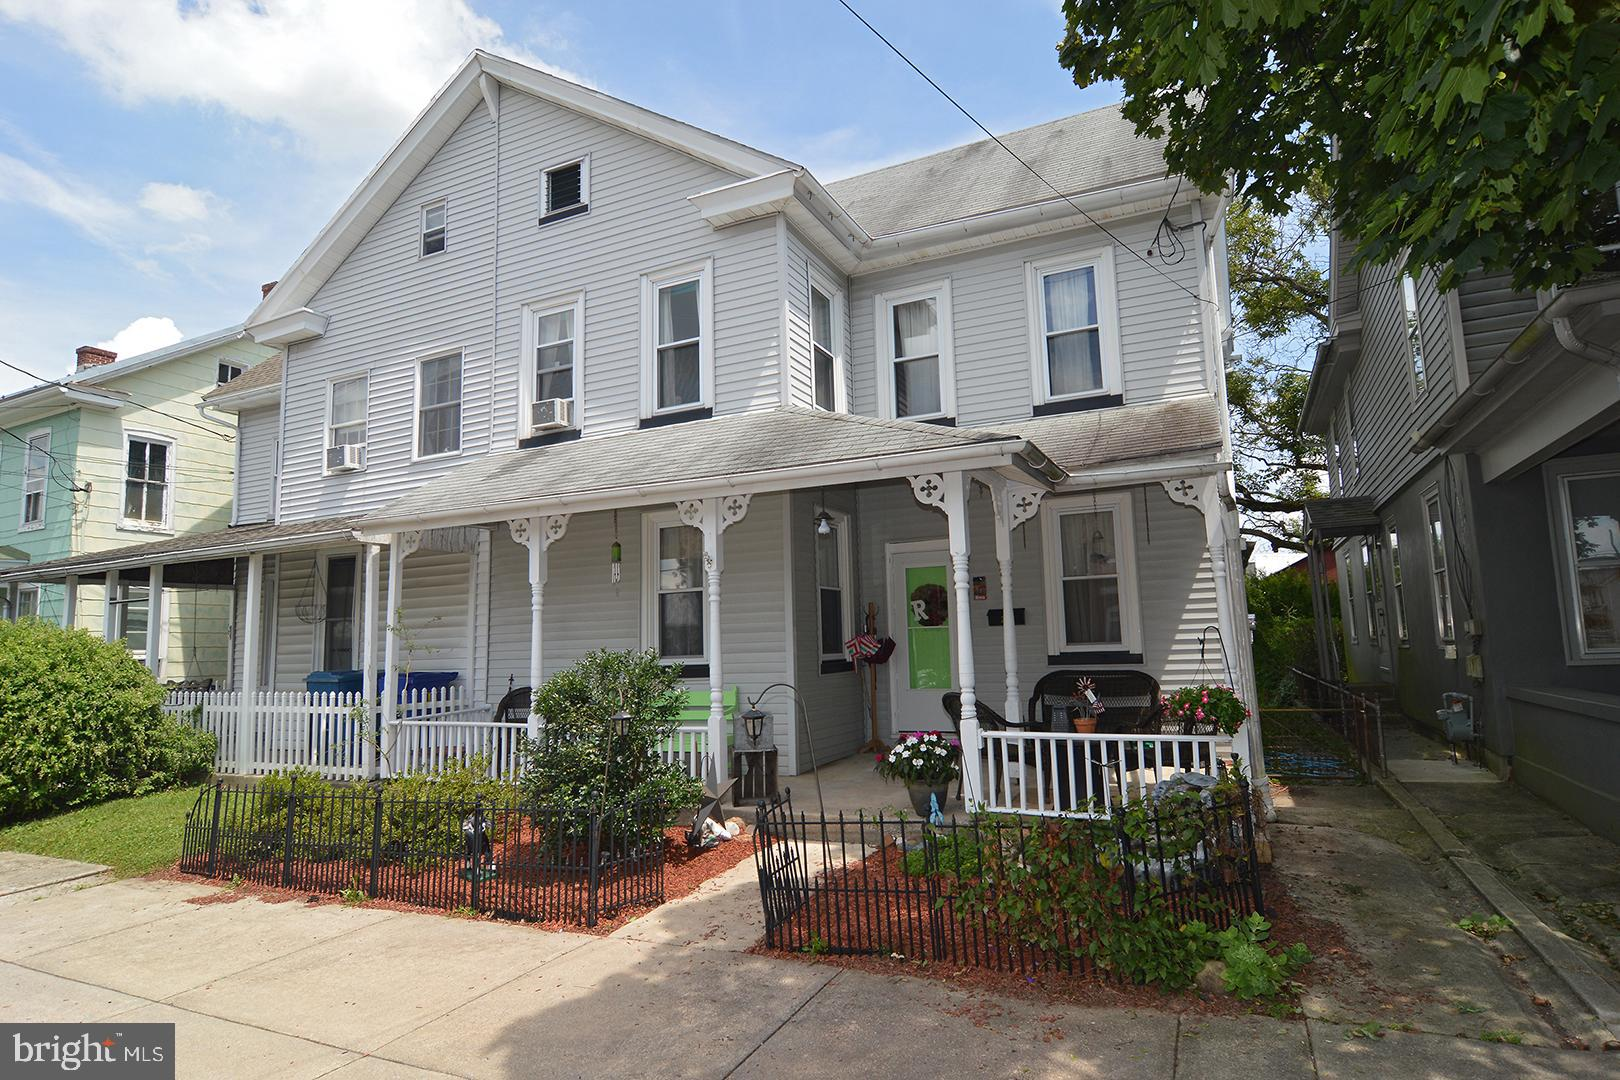 29 S ROBESON STREET, ROBESONIA, PA 19551